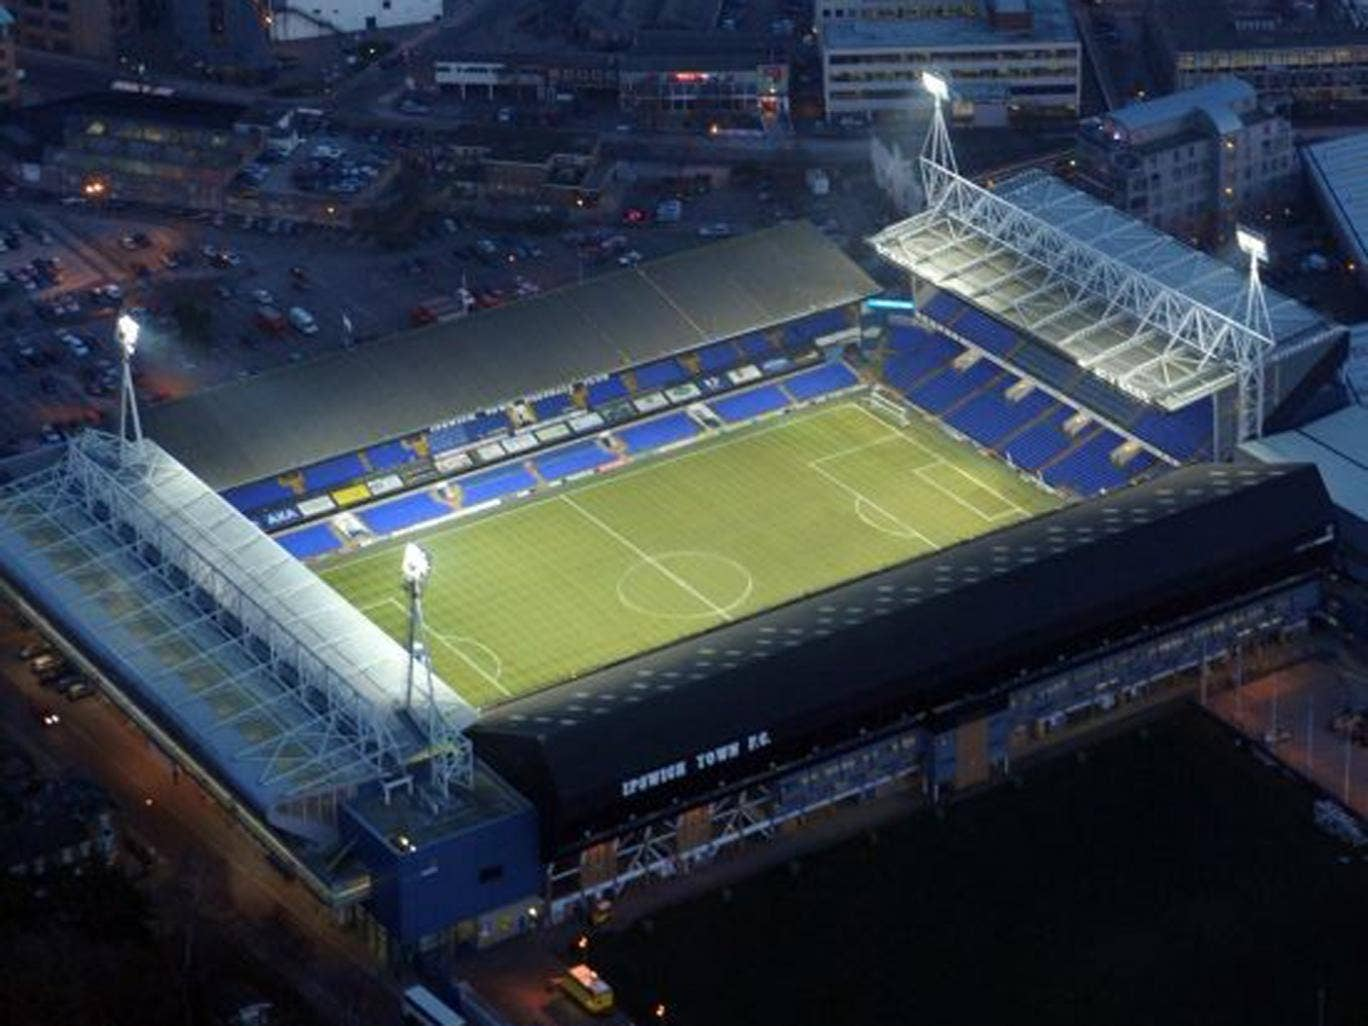 Ipswich Town Football Club provides 600 people with a living